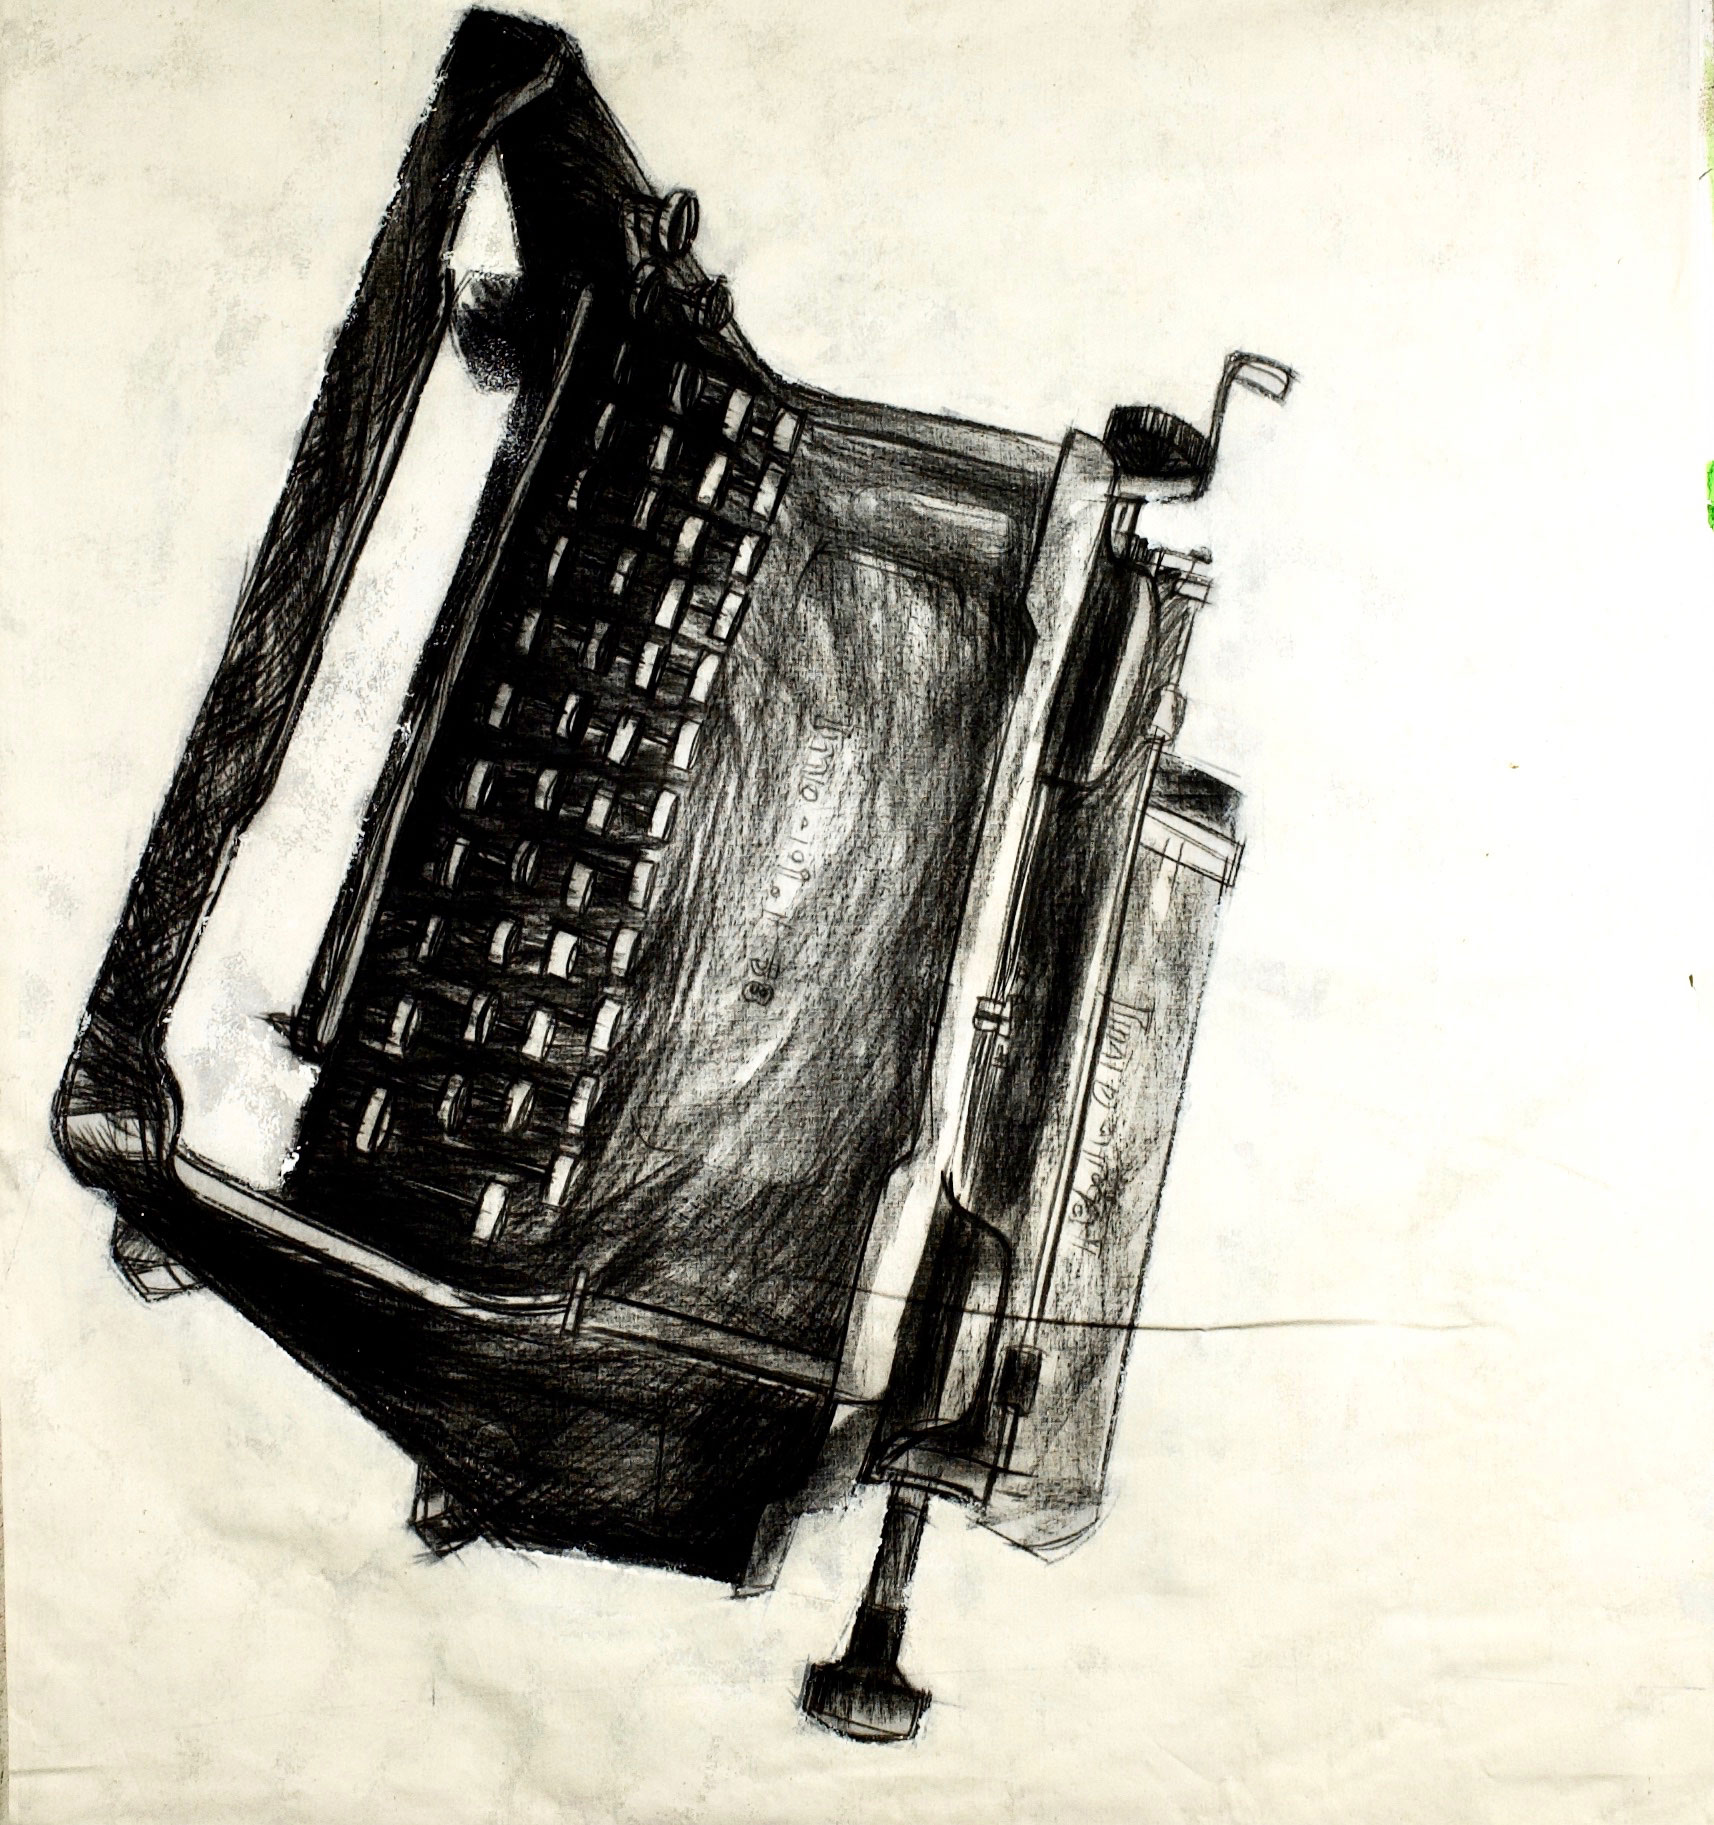 6-x-4'-charcoal-drawings-on-fabric.jpg